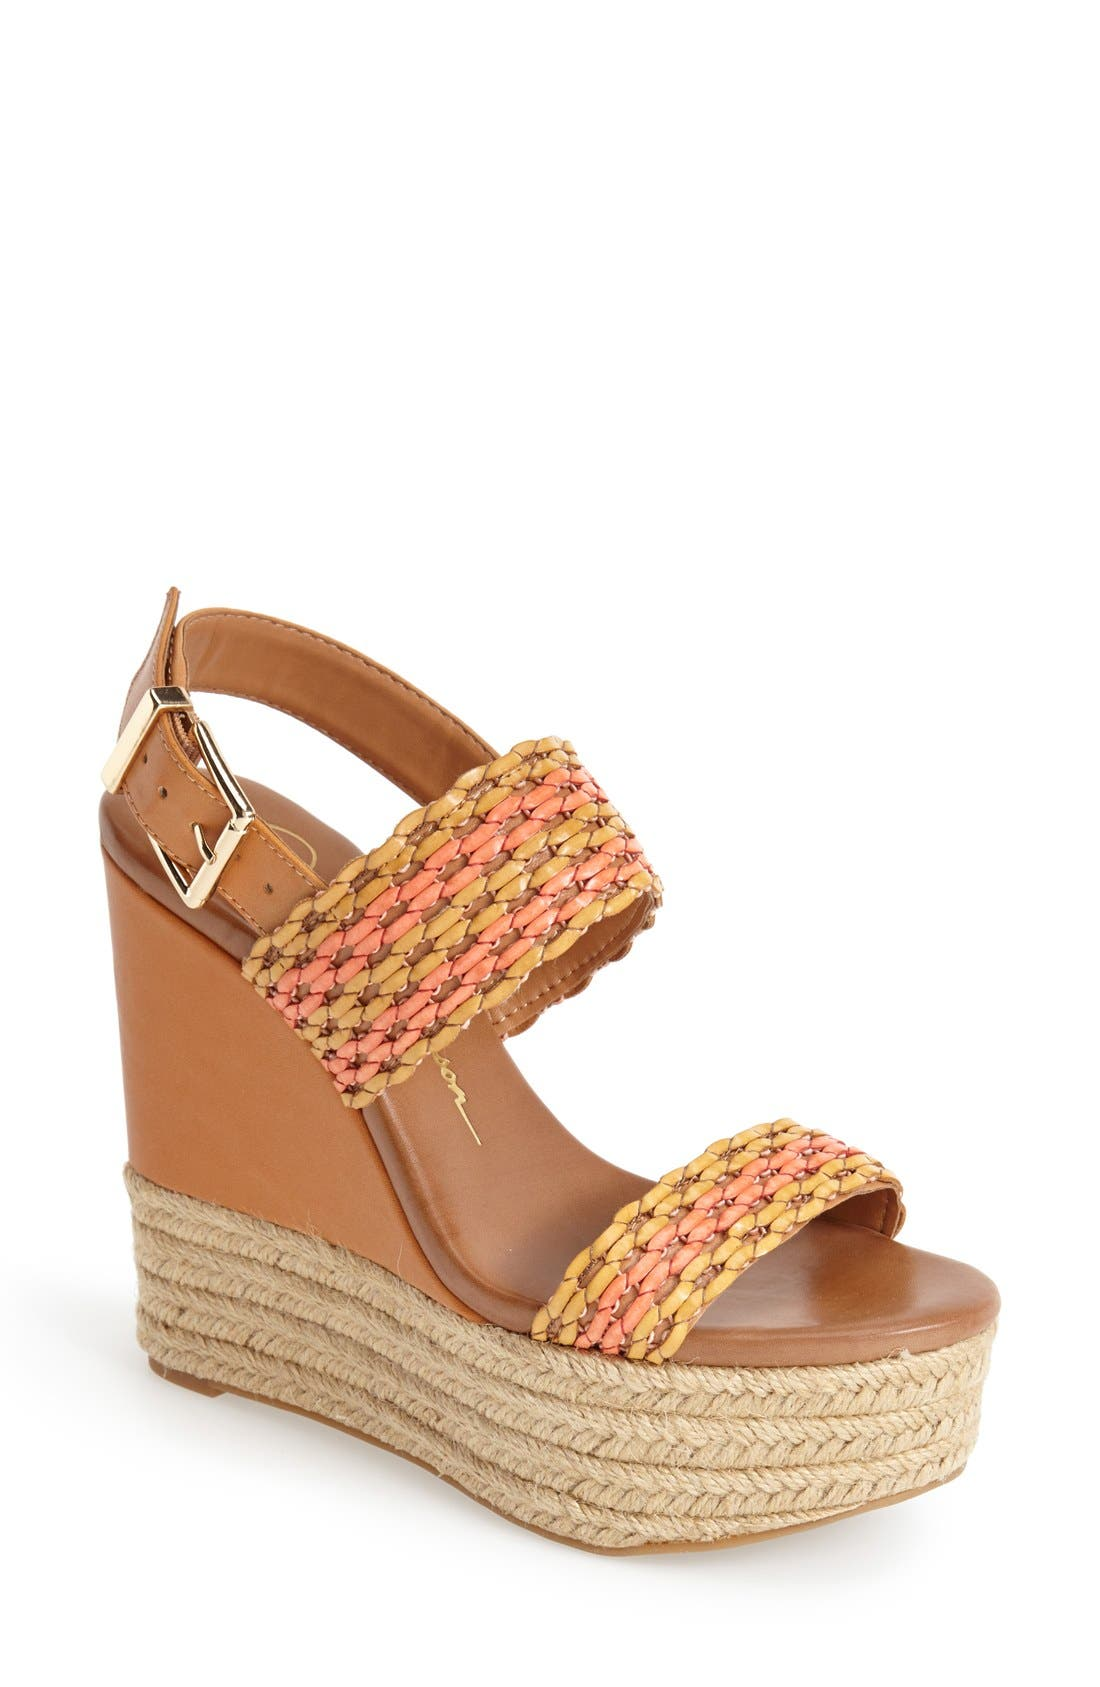 Alternate Image 1 Selected - Jessica Simpson 'Allyn' Wedge Platform Leather Sandal (Women)